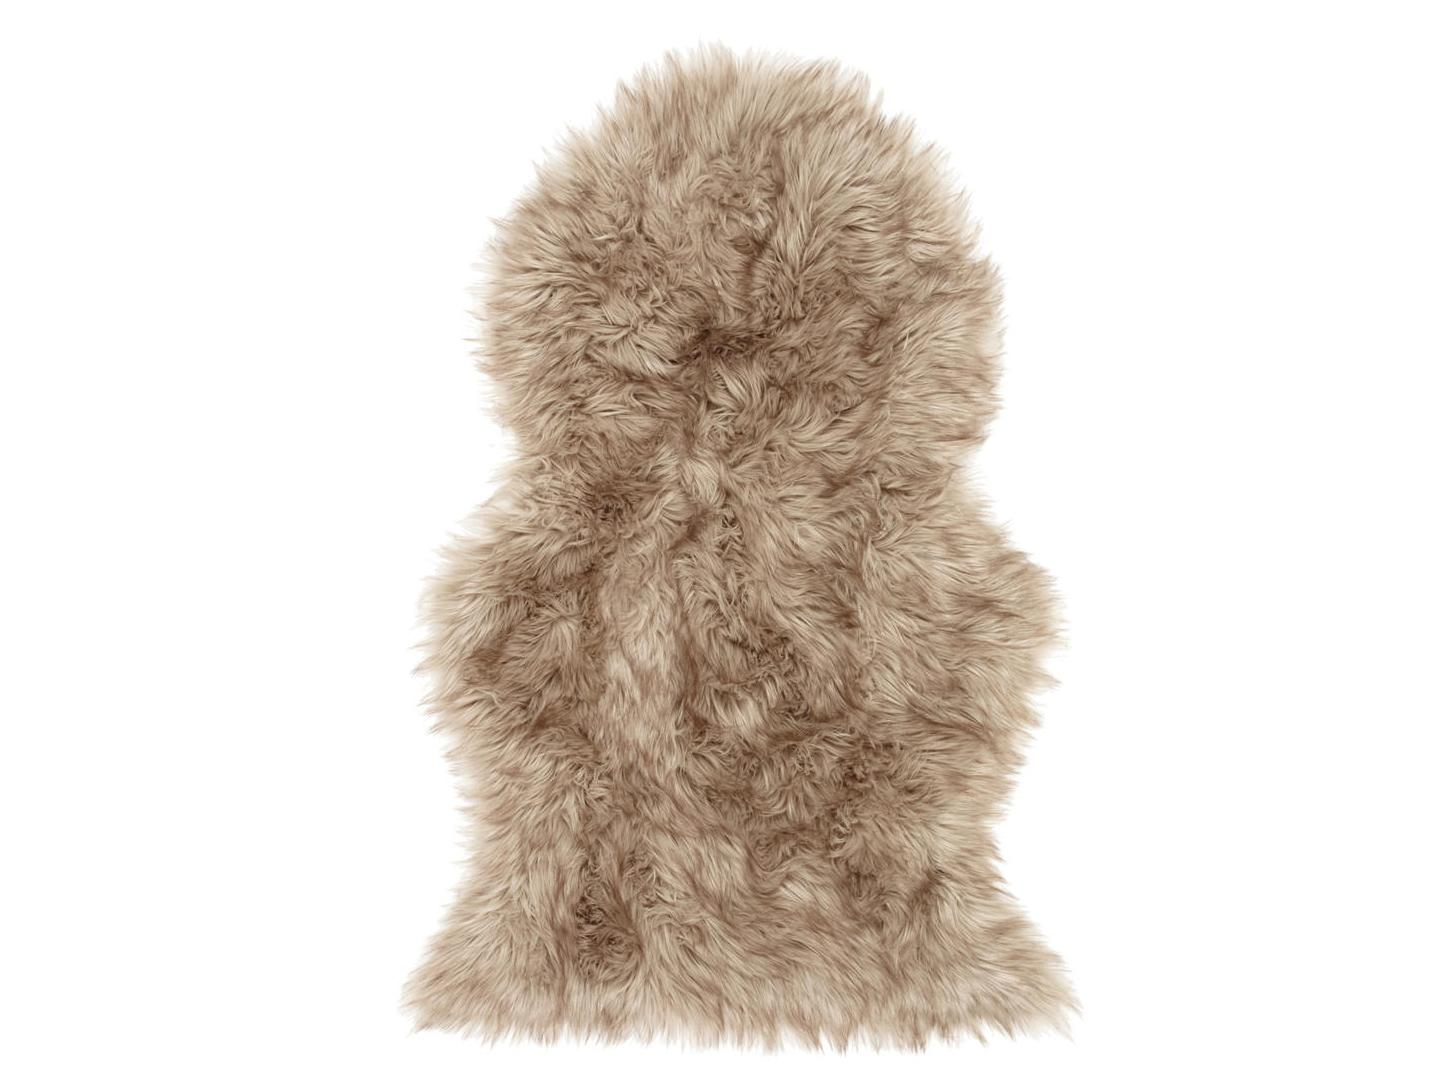 Faux sheepskin rug Red Faux Fur Sheepskin Rug 25 Johnlewiscom The Independent Best Faux Fur Rugs The Independent